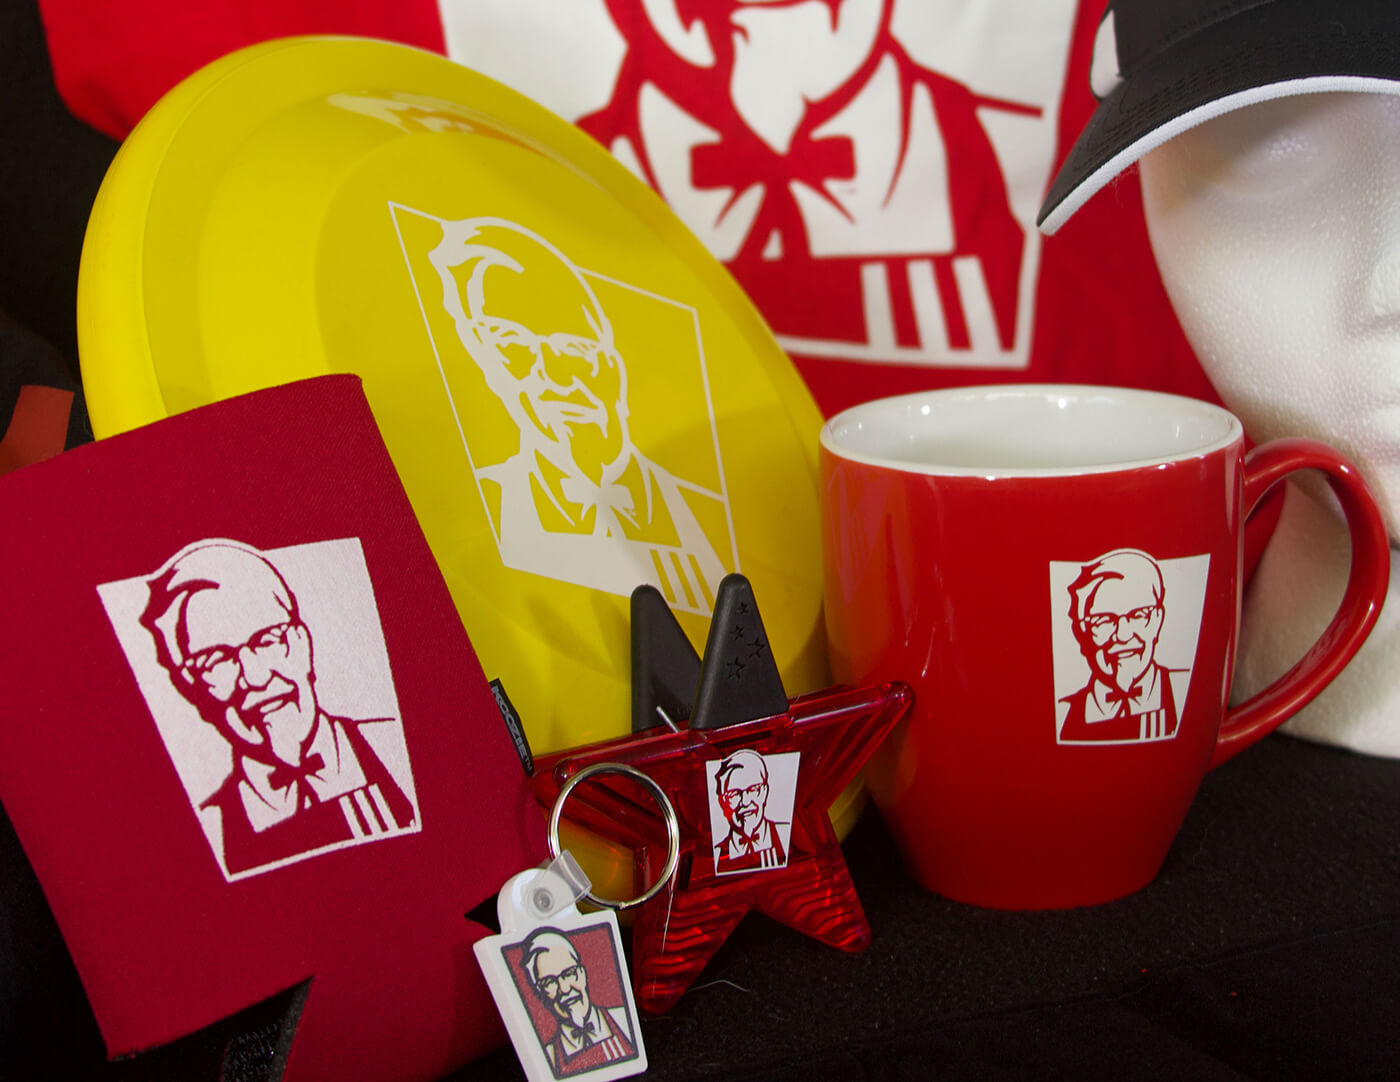 Promotions items for KFC